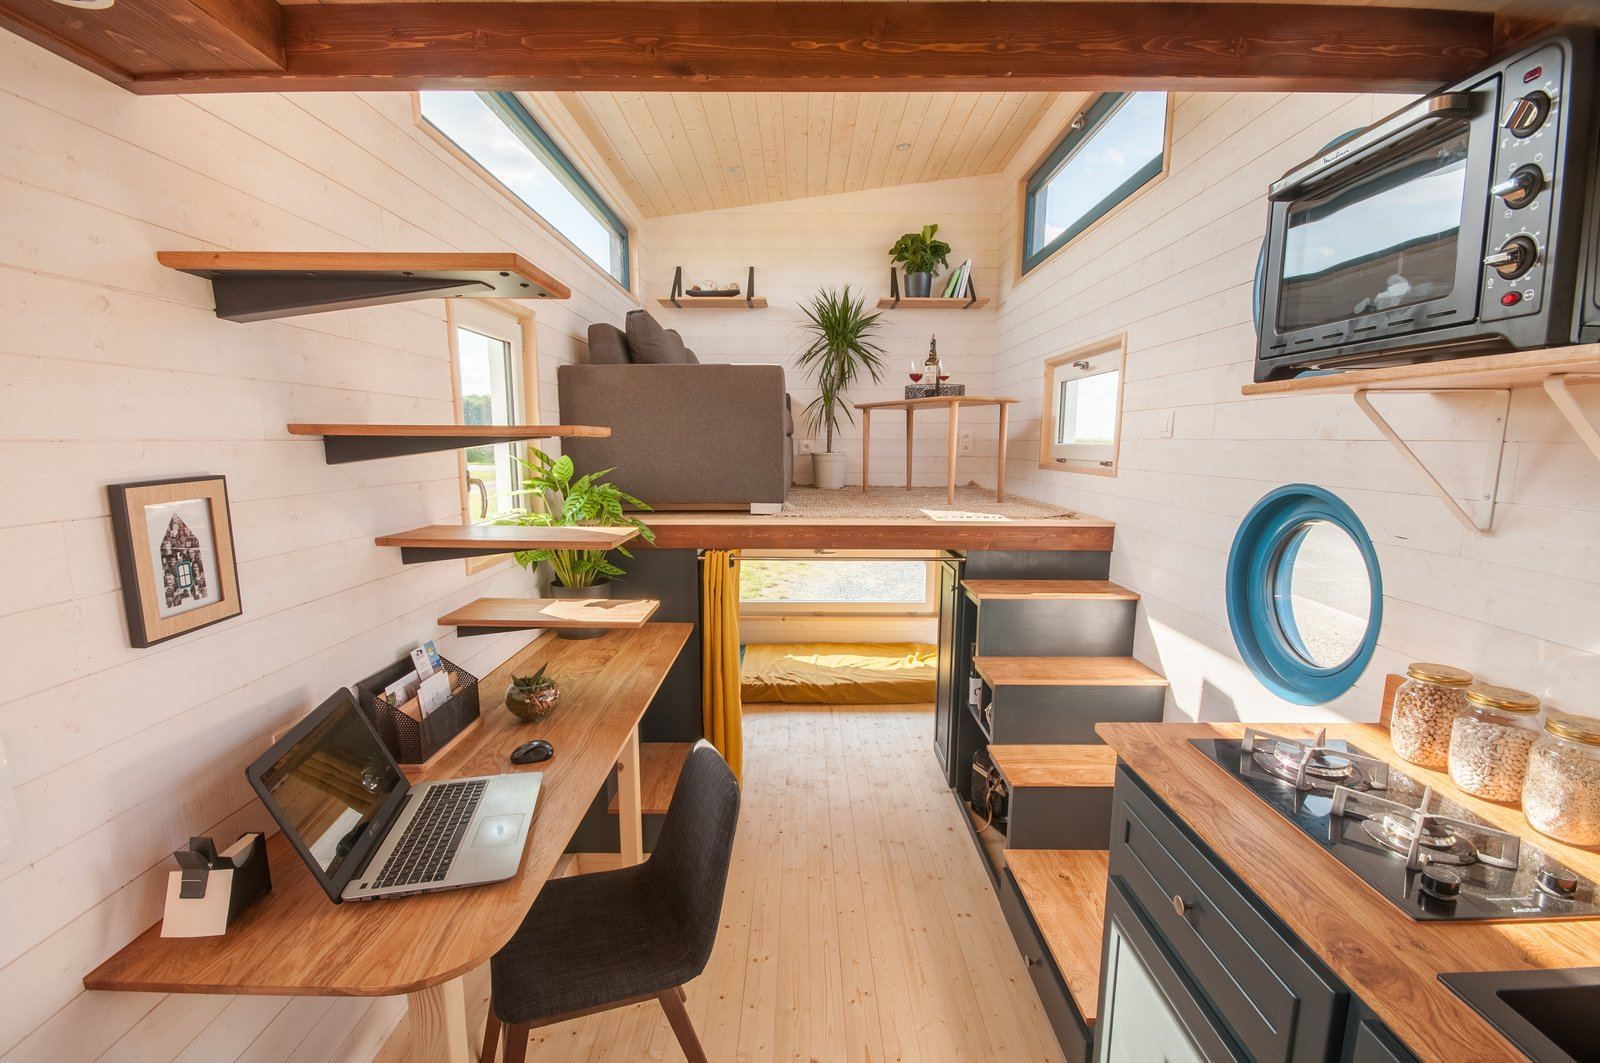 This 140-Square-Foot Tiny House Is Packed With Surprises